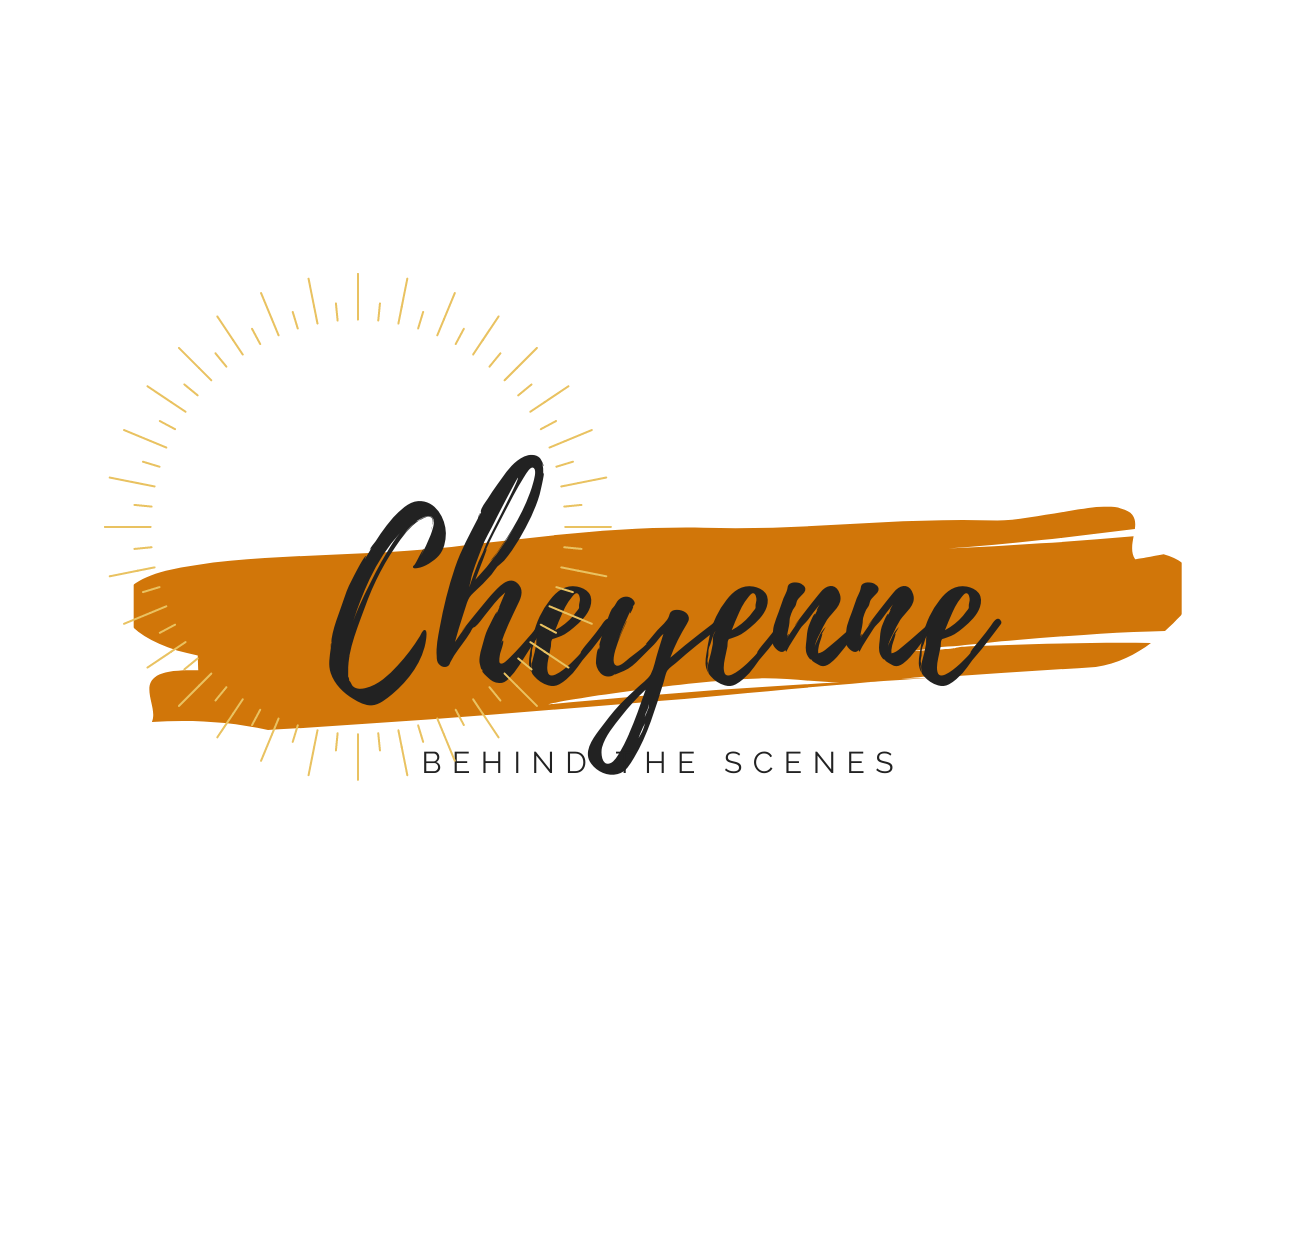 Cheyenne Behind the Scenes